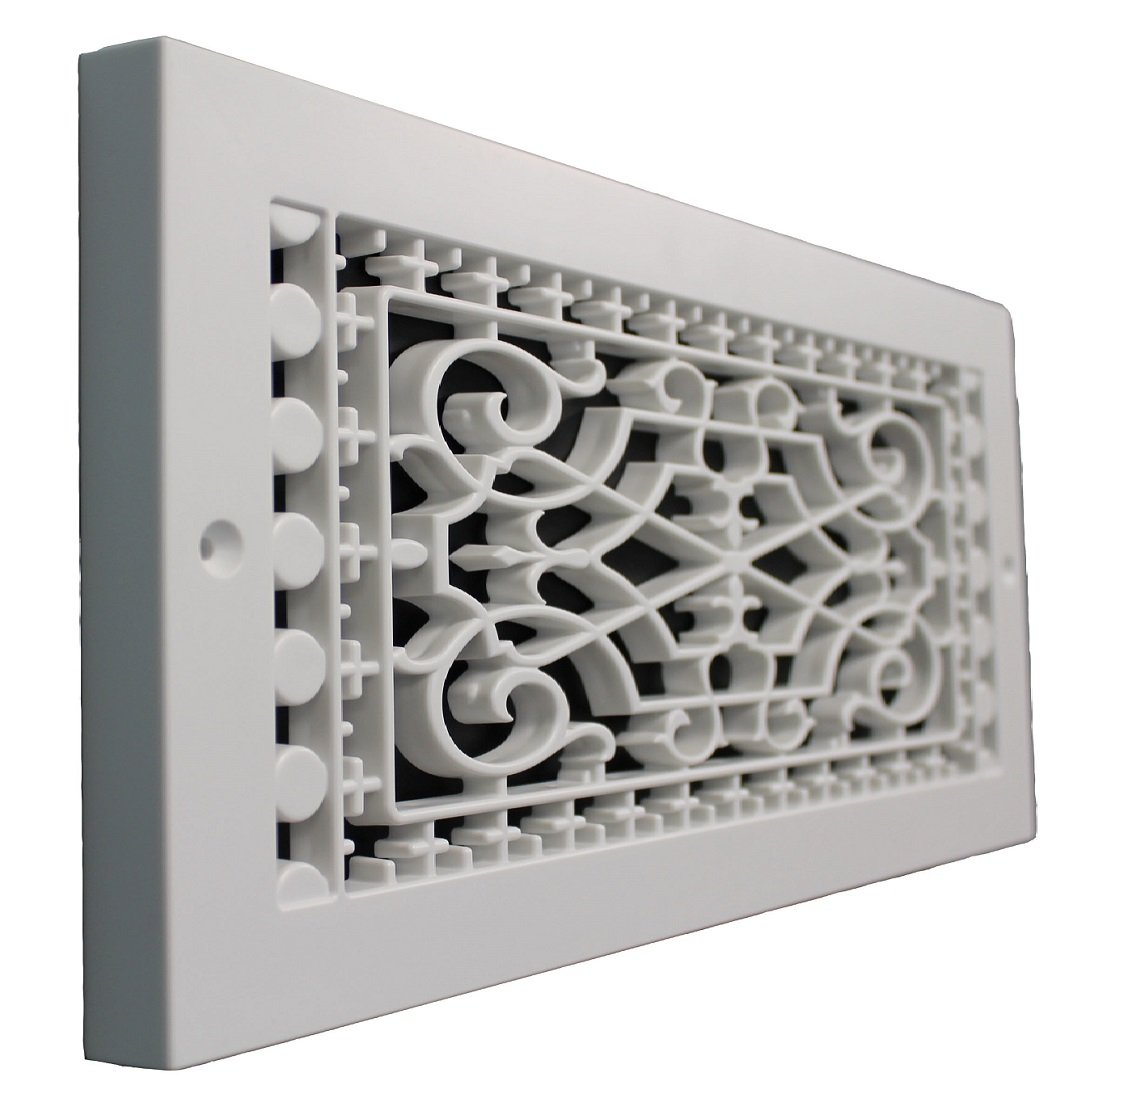 SMI Ventilation Products VBB614 Cold Air Return - 6 x 14 Victorian Style Base Board